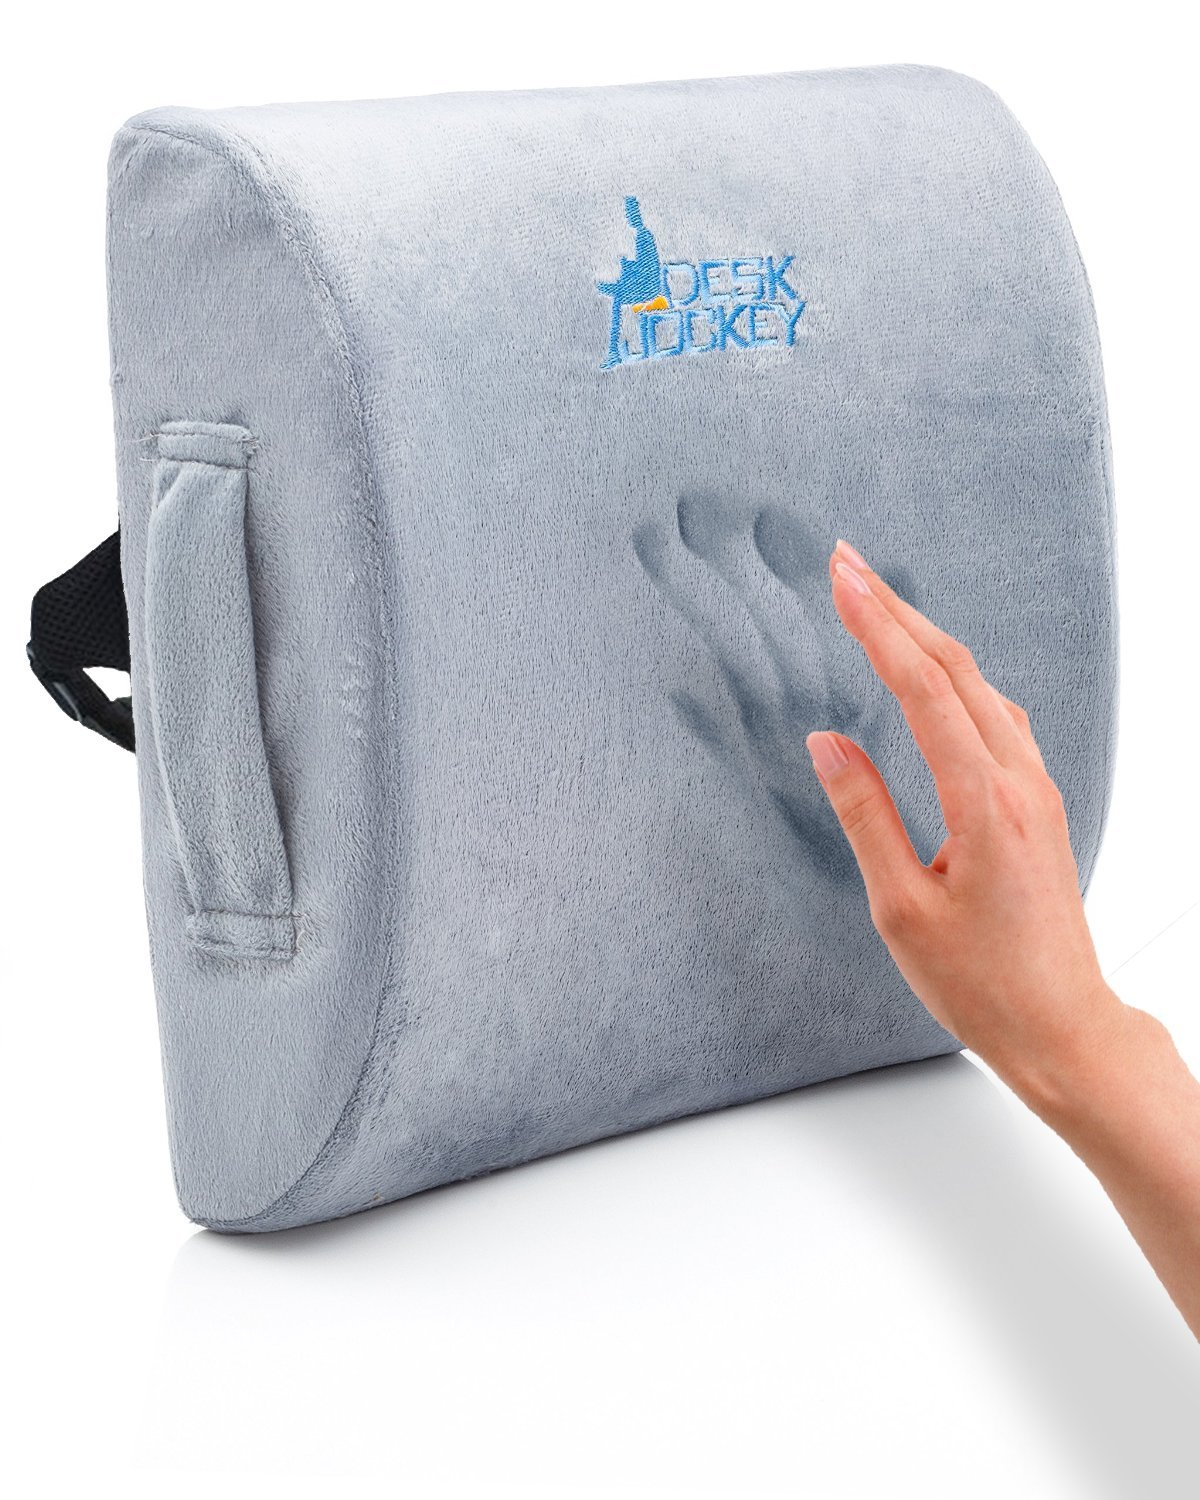 Best Car Travel Pillow